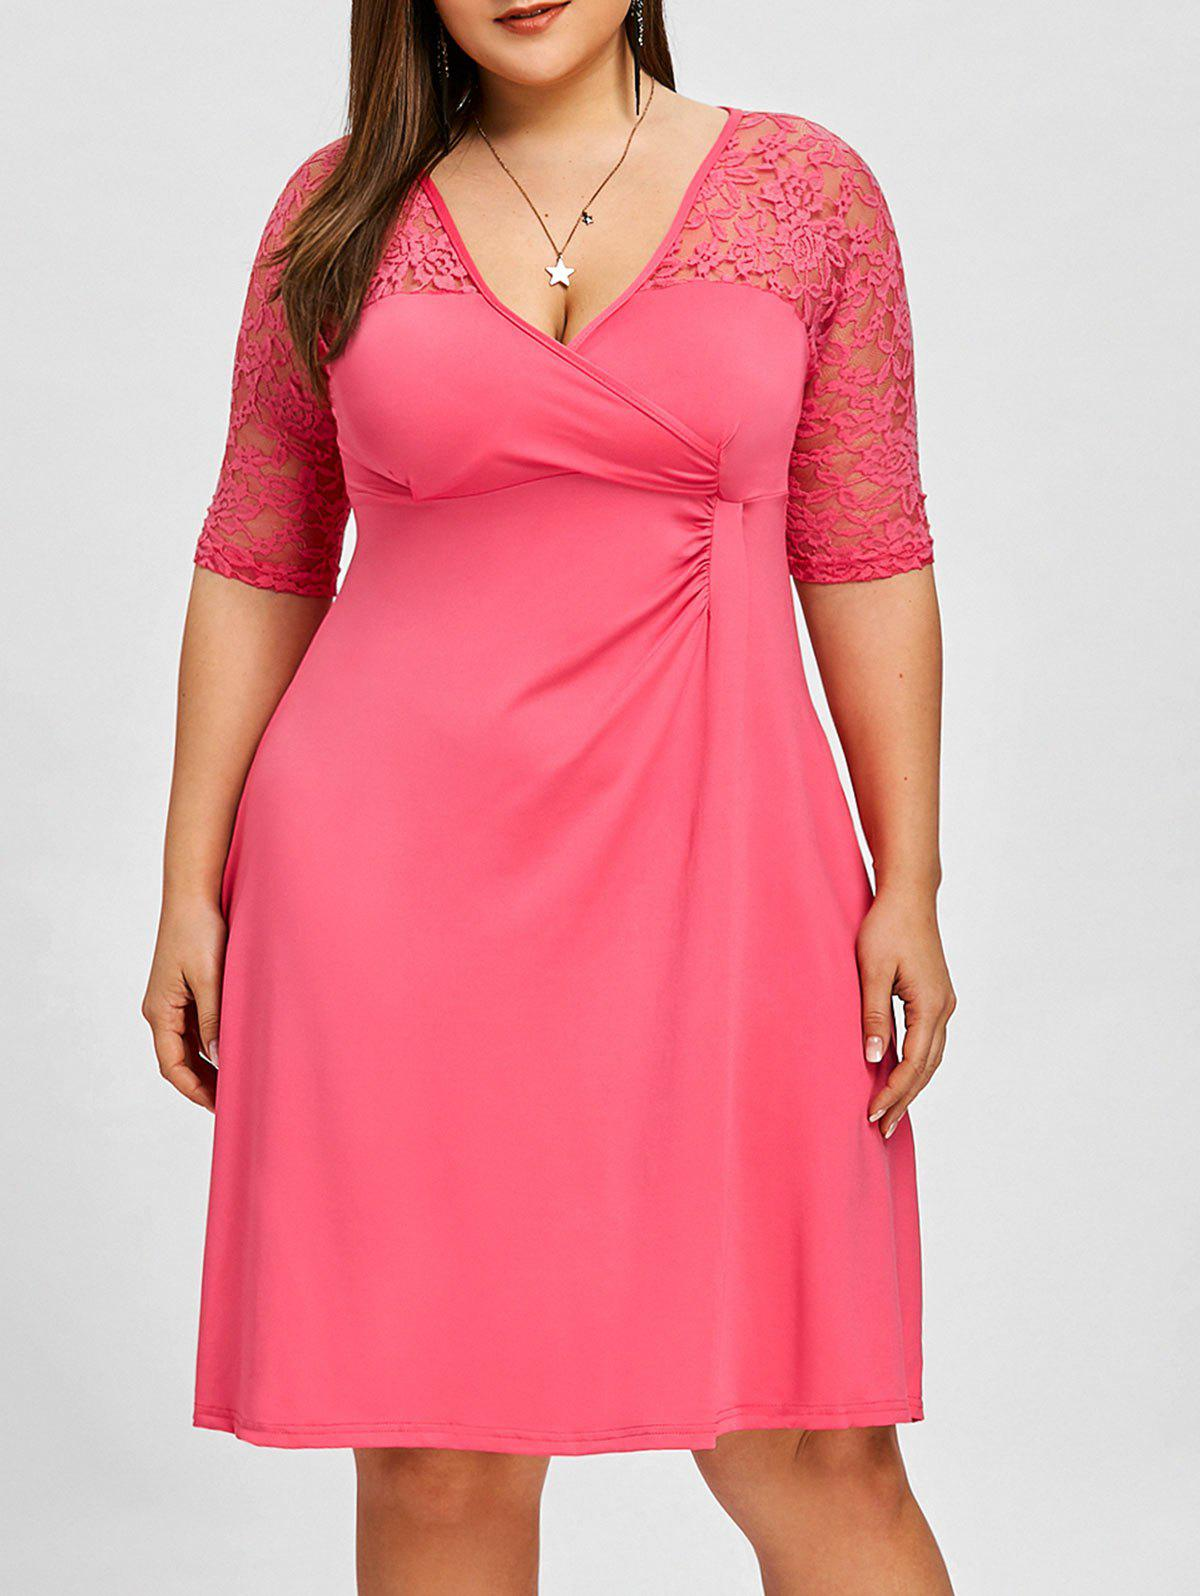 Latest Translucent Lace Insert Plus Size Surplice Dress